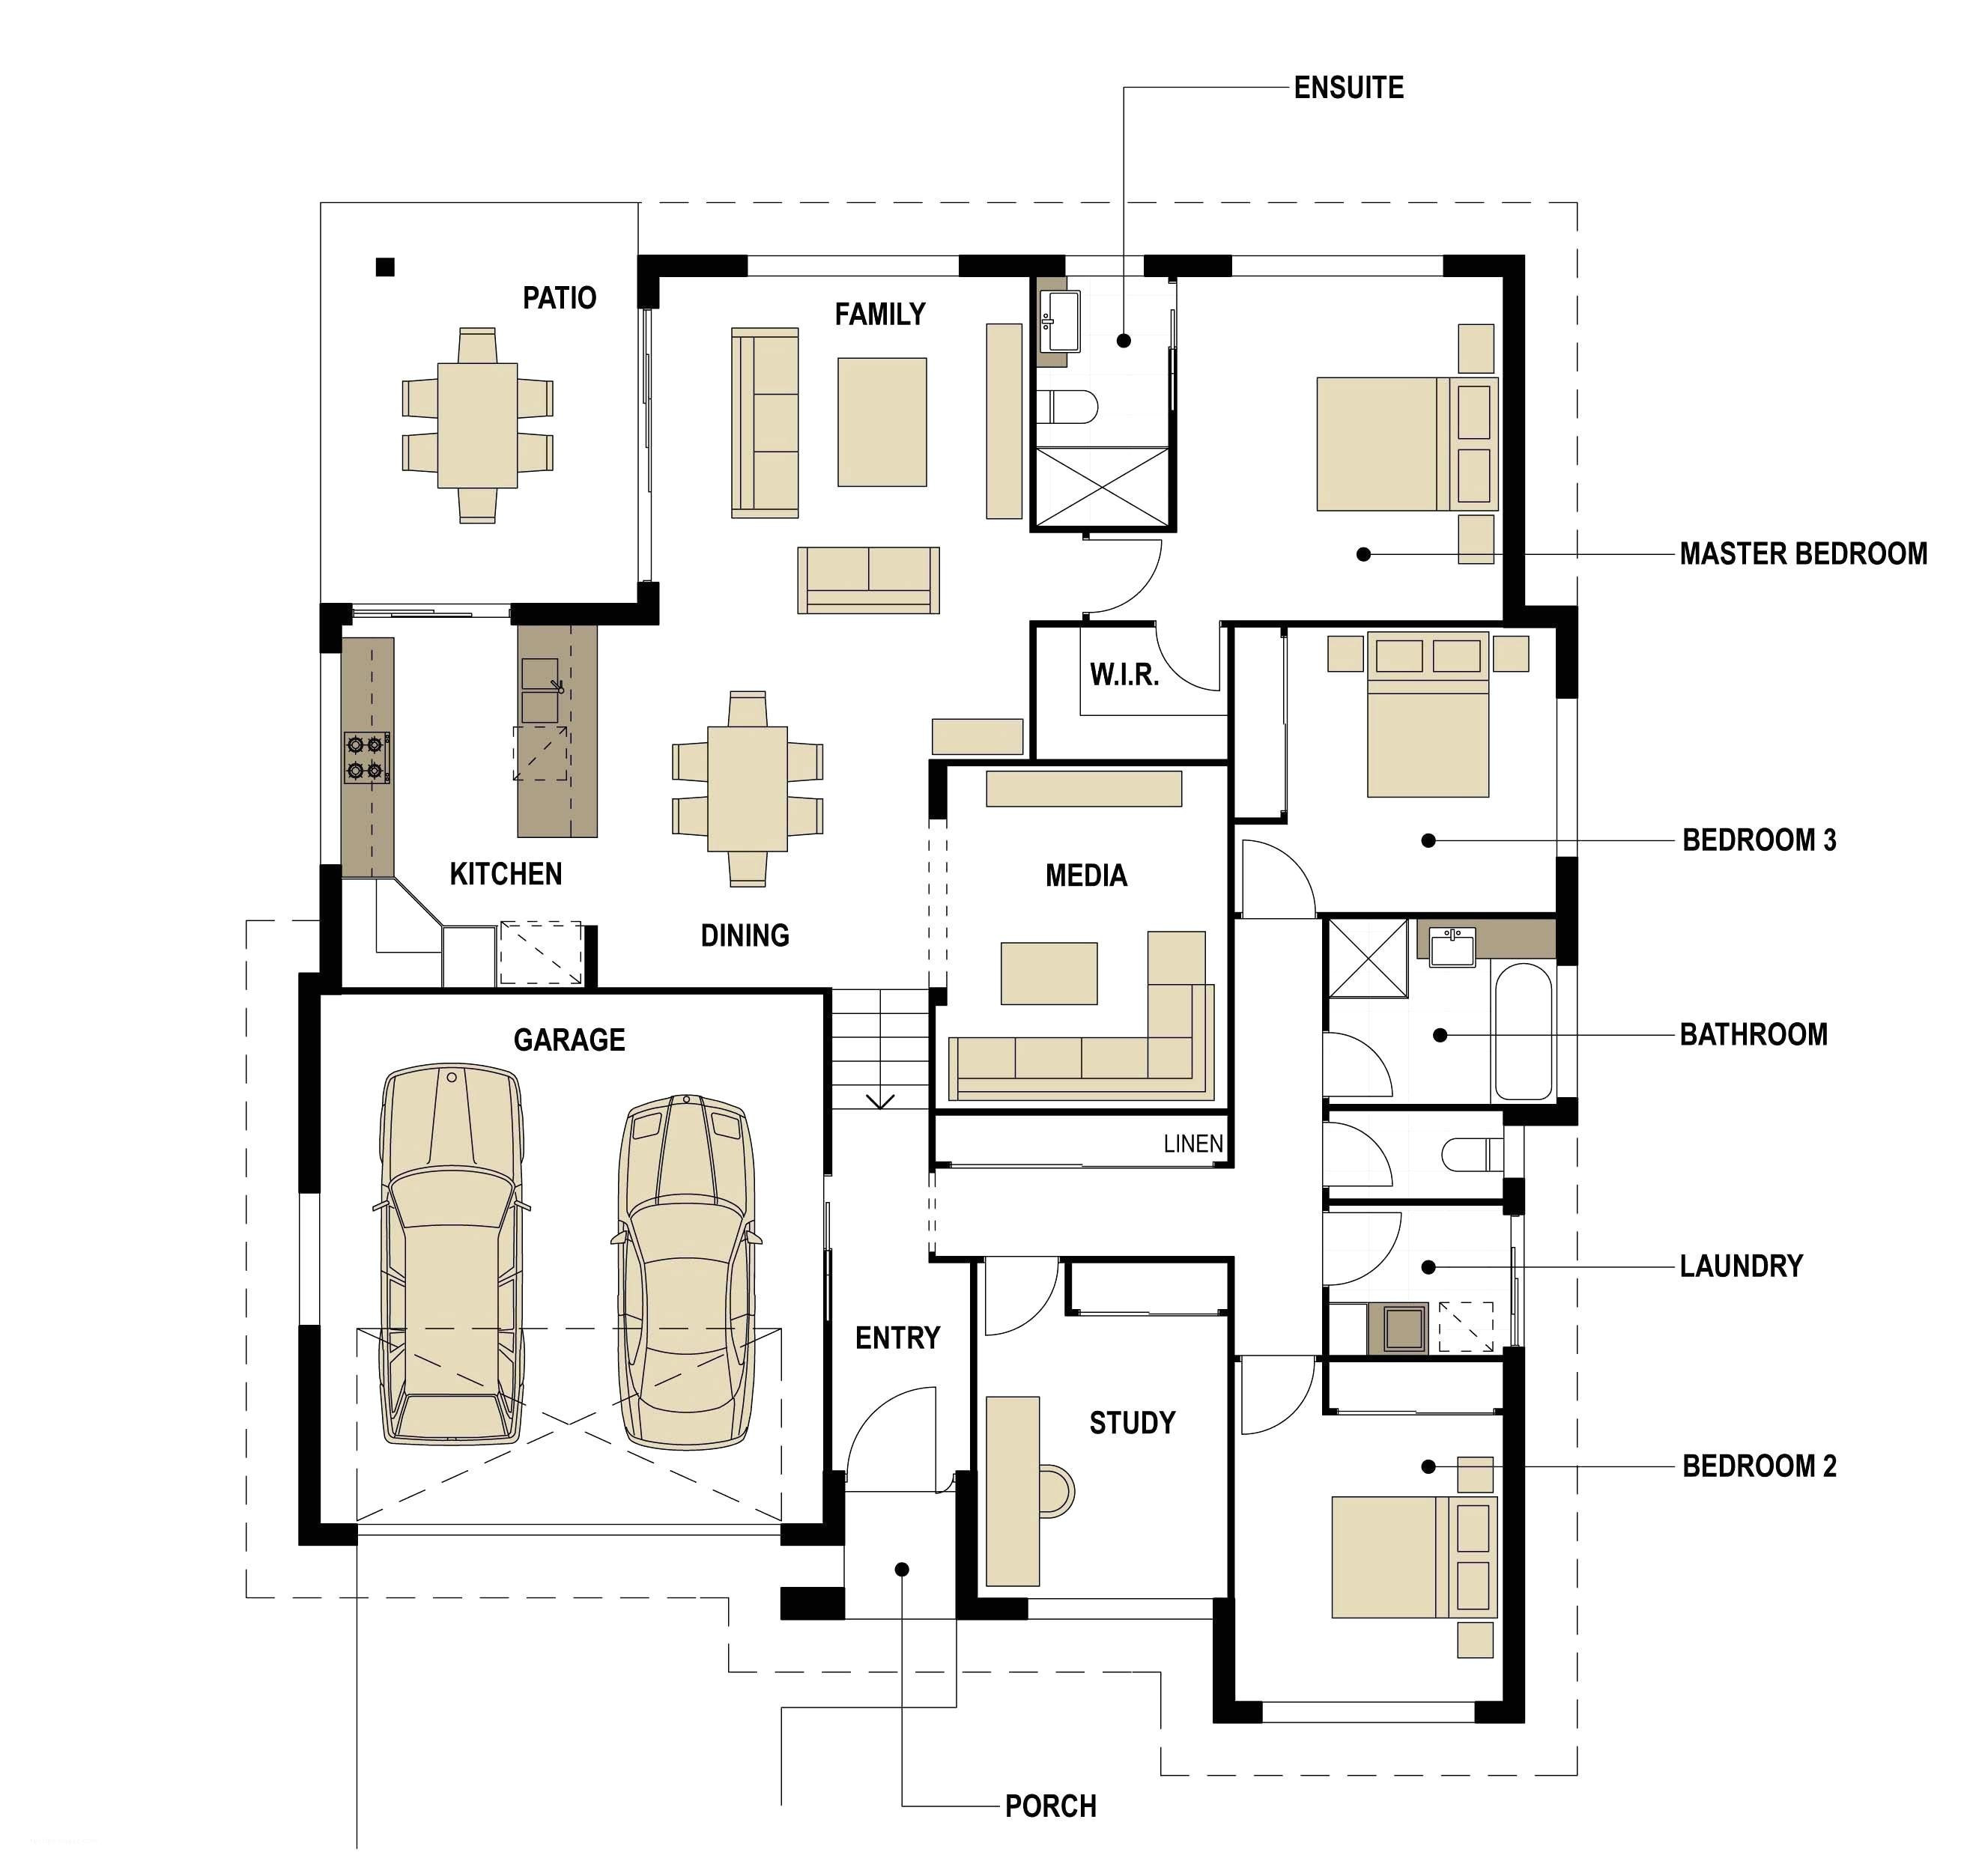 house of blues dallas floor plan lovely house blues anaheim floor plan luxury 122 best plans